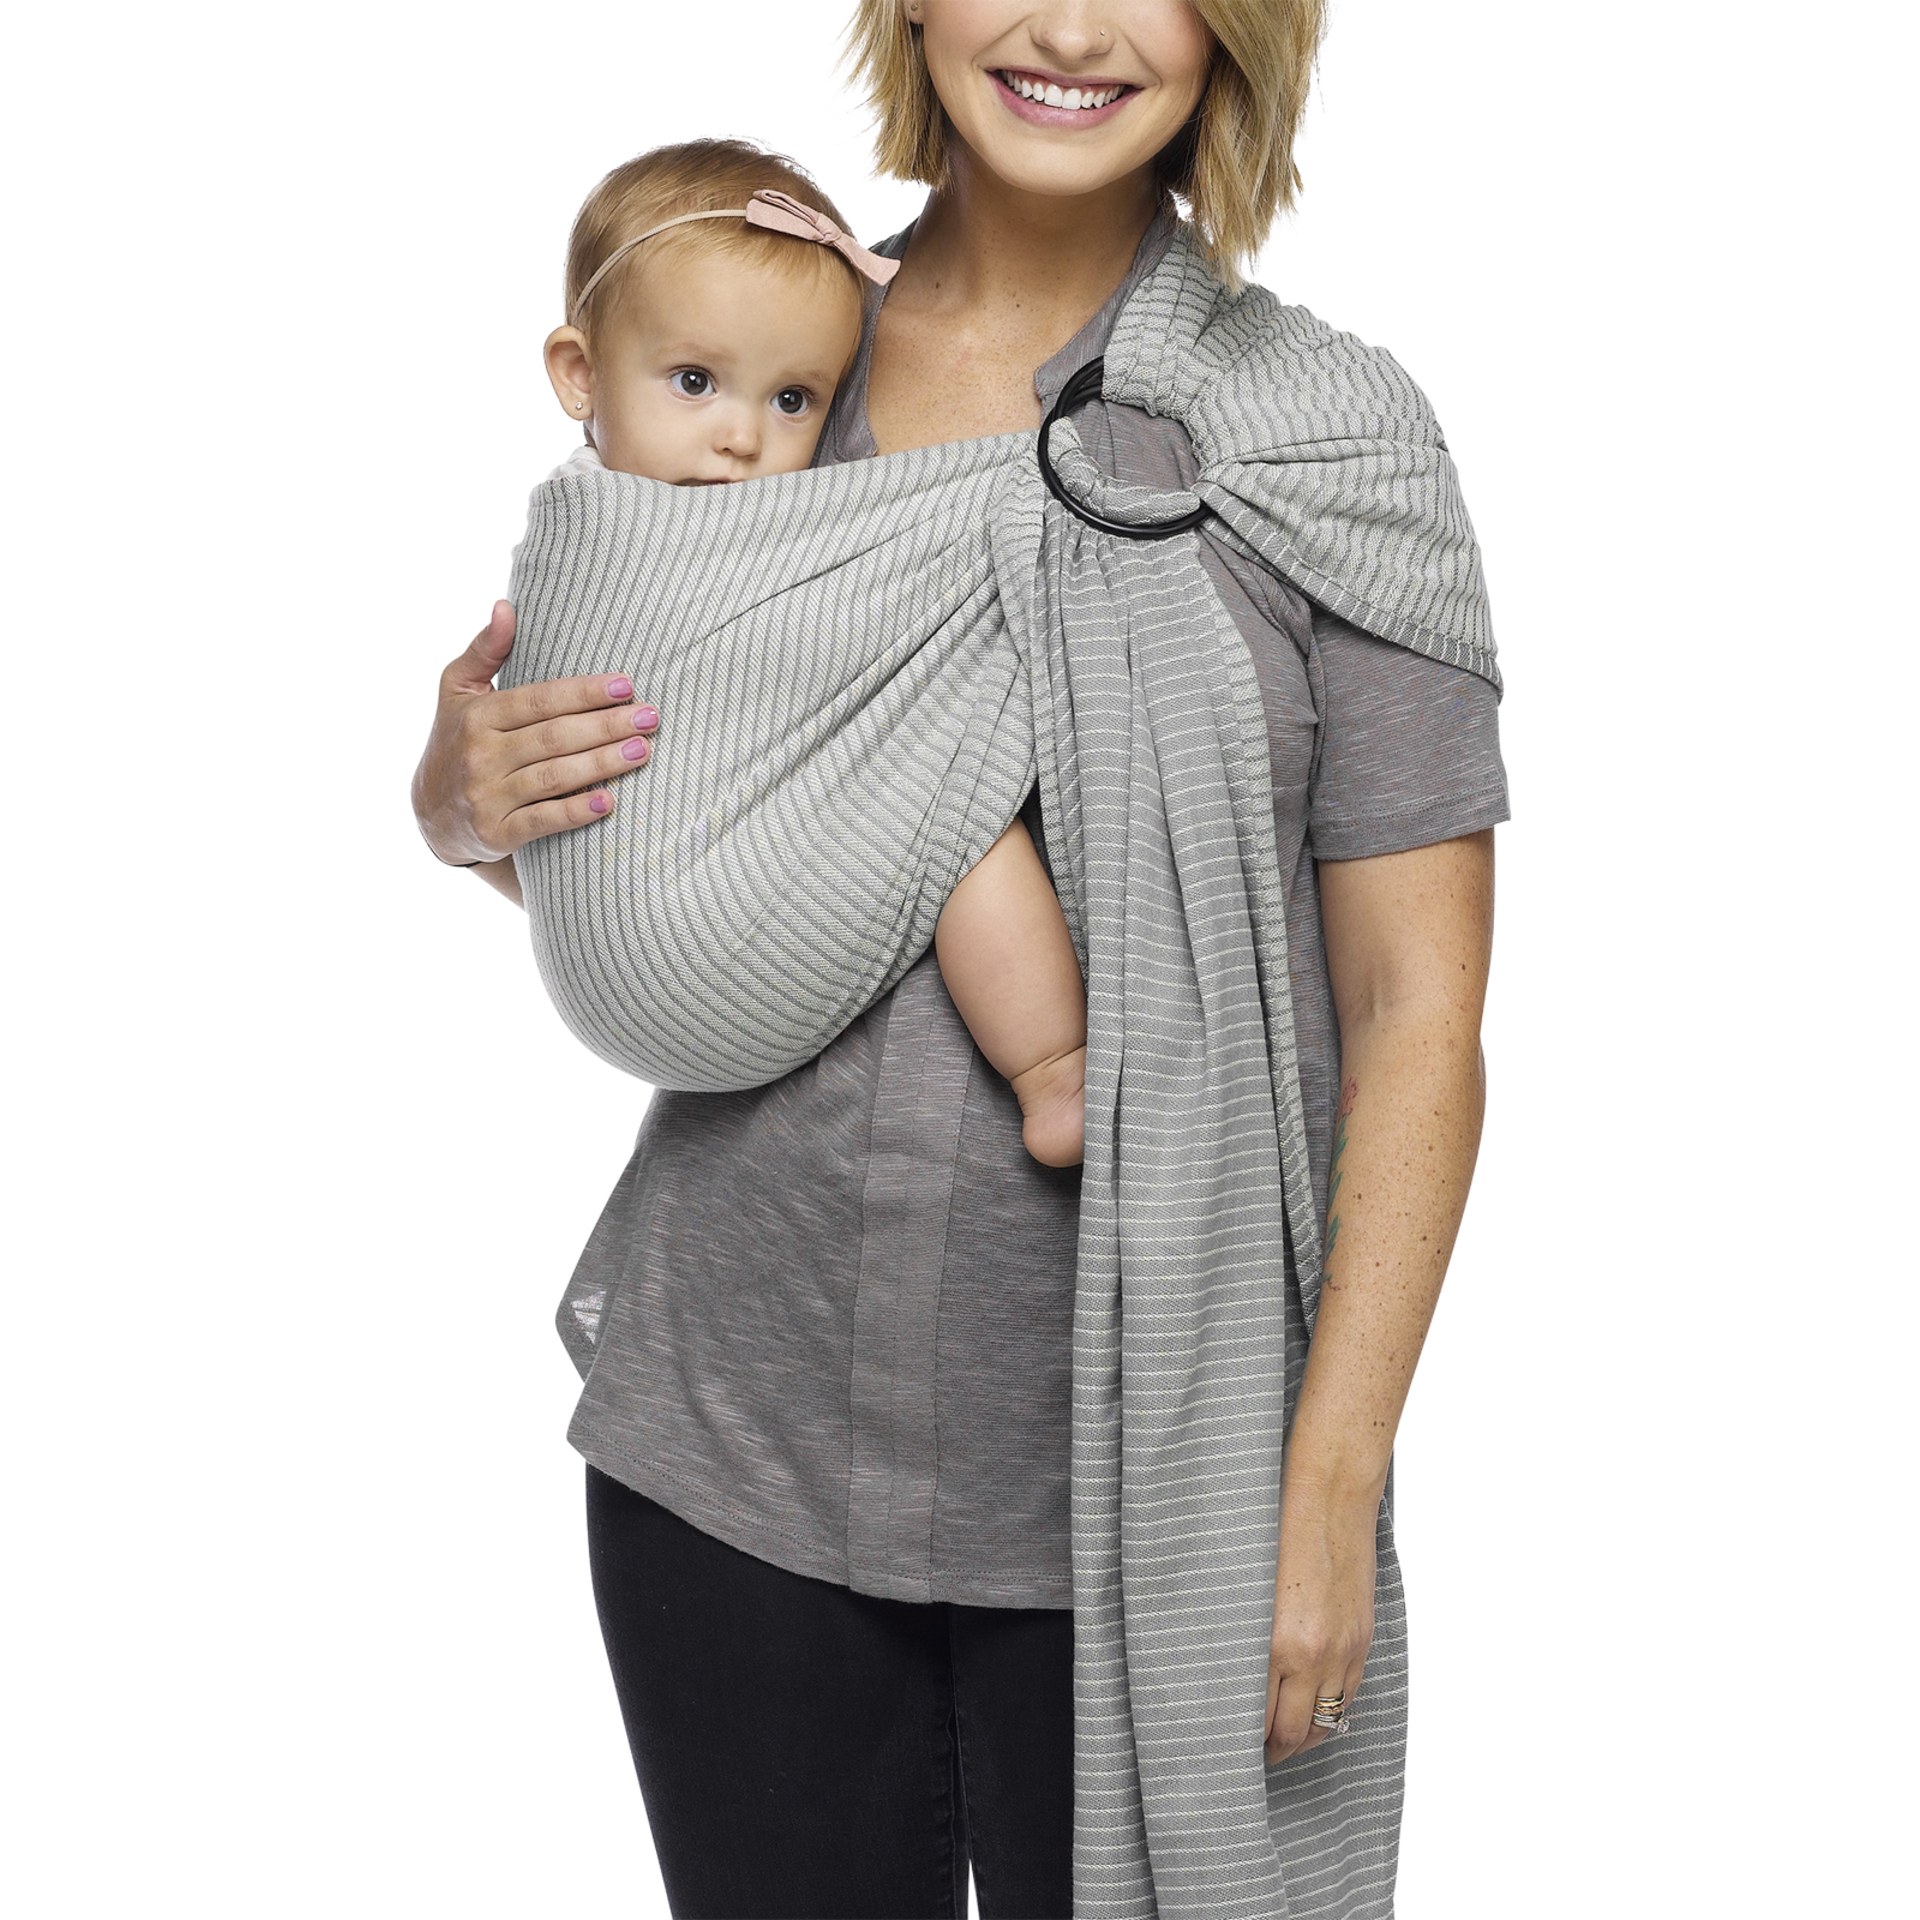 Mother & Kids Reasonable Baby Sling Breathable Comfortable Wrap Infant Carrier Cotton Kid Baby Infant Carrier Soft Ring Swing Slings Baby Sling Product Discounts Sale